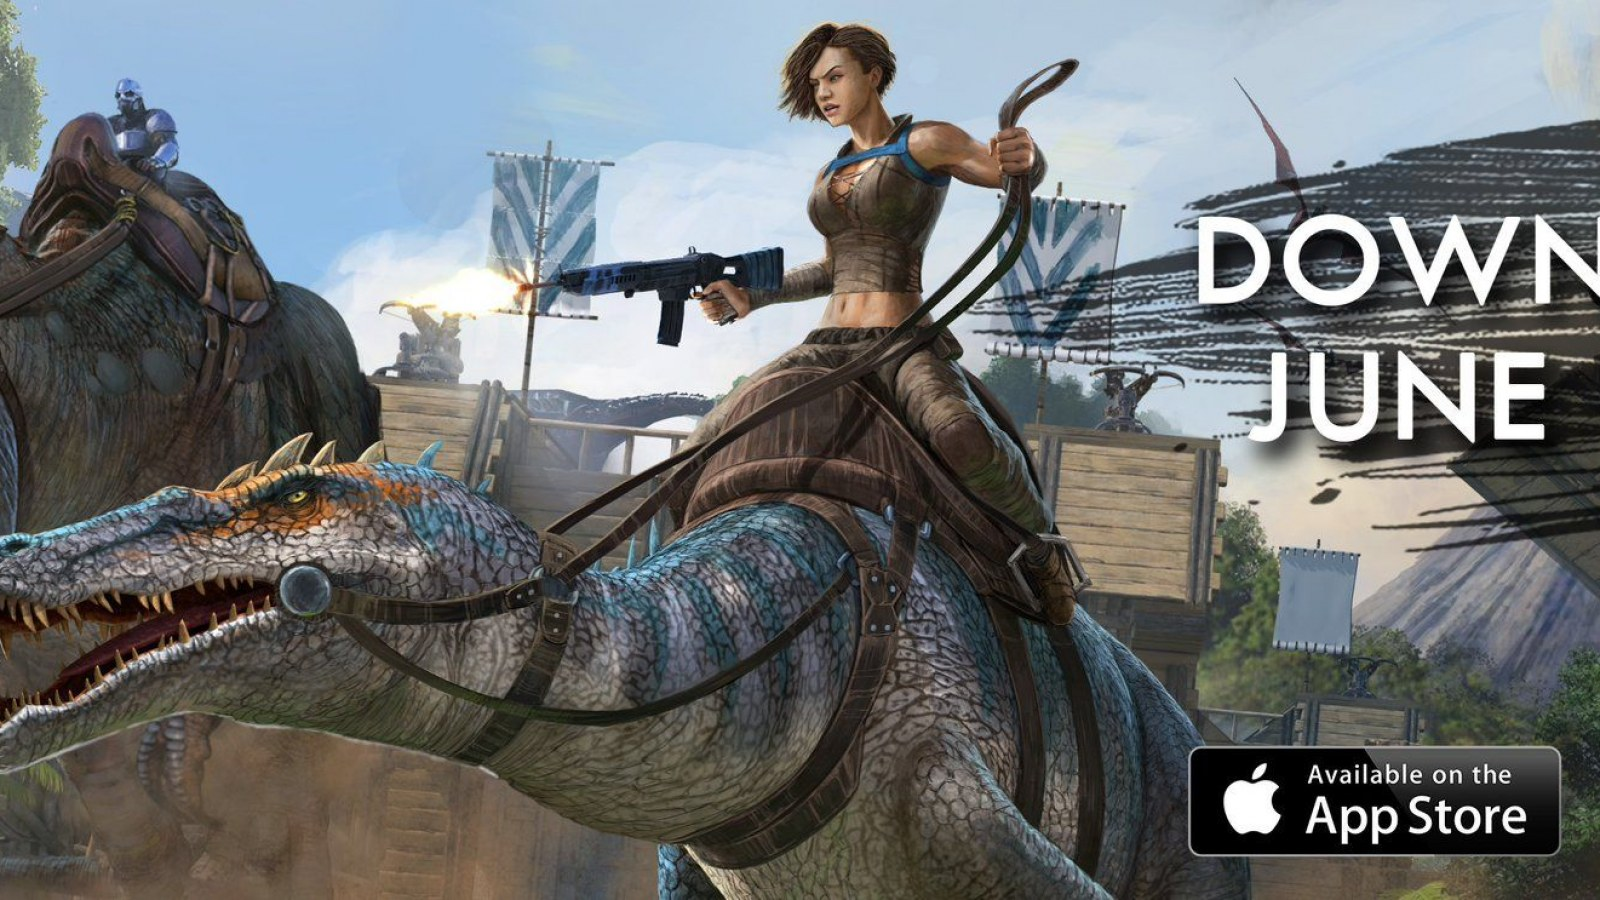 ARK: Survival Evolved' Android, iOS Release Time - When You